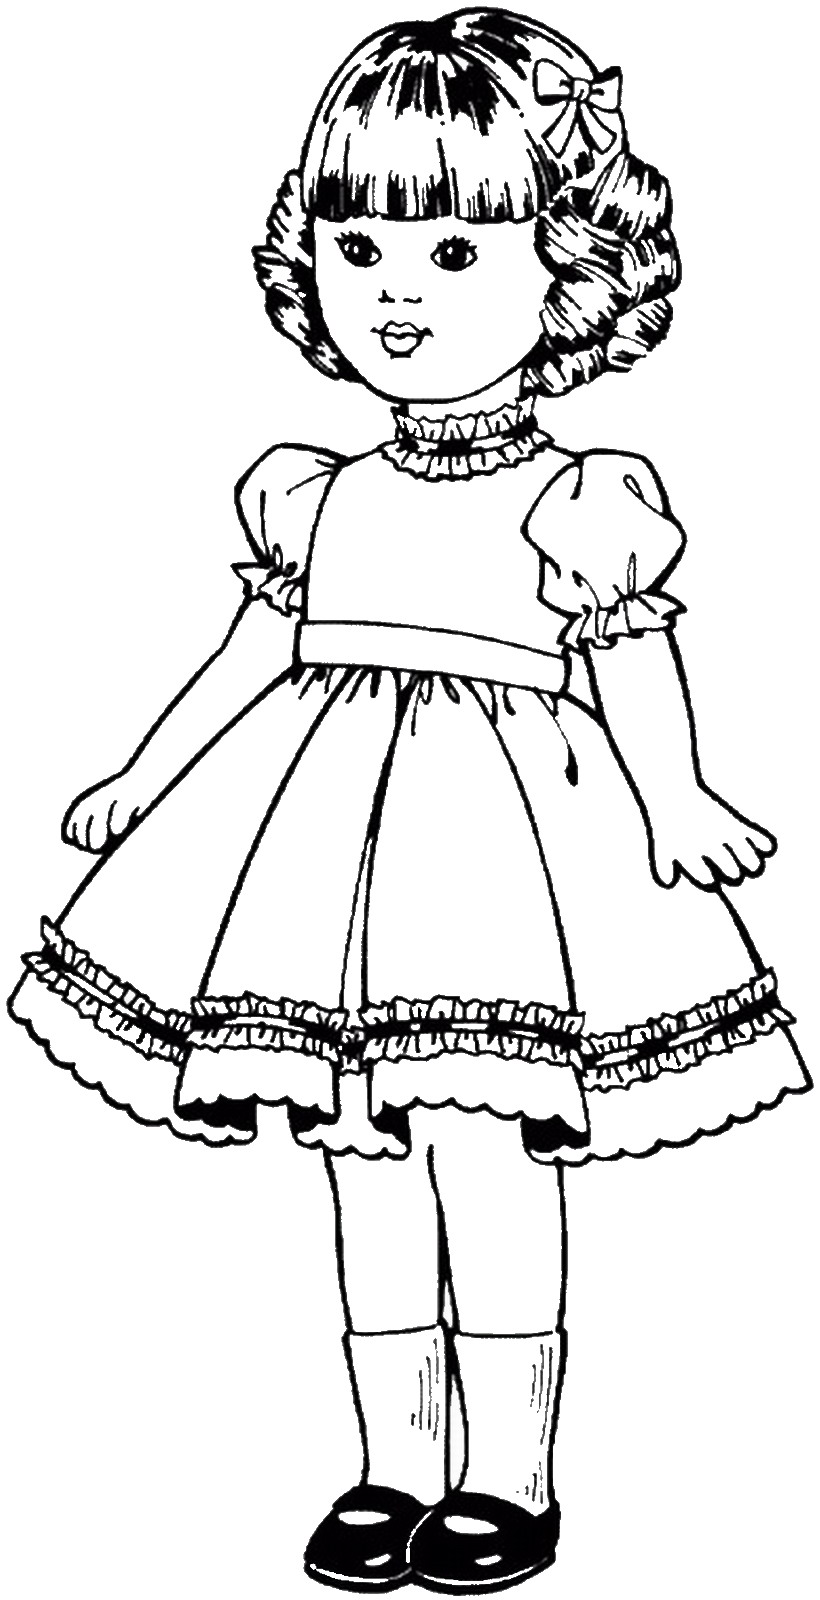 coloring sheet coloring pictures for kids free printable flower coloring pages for kids best for sheet coloring coloring pictures kids